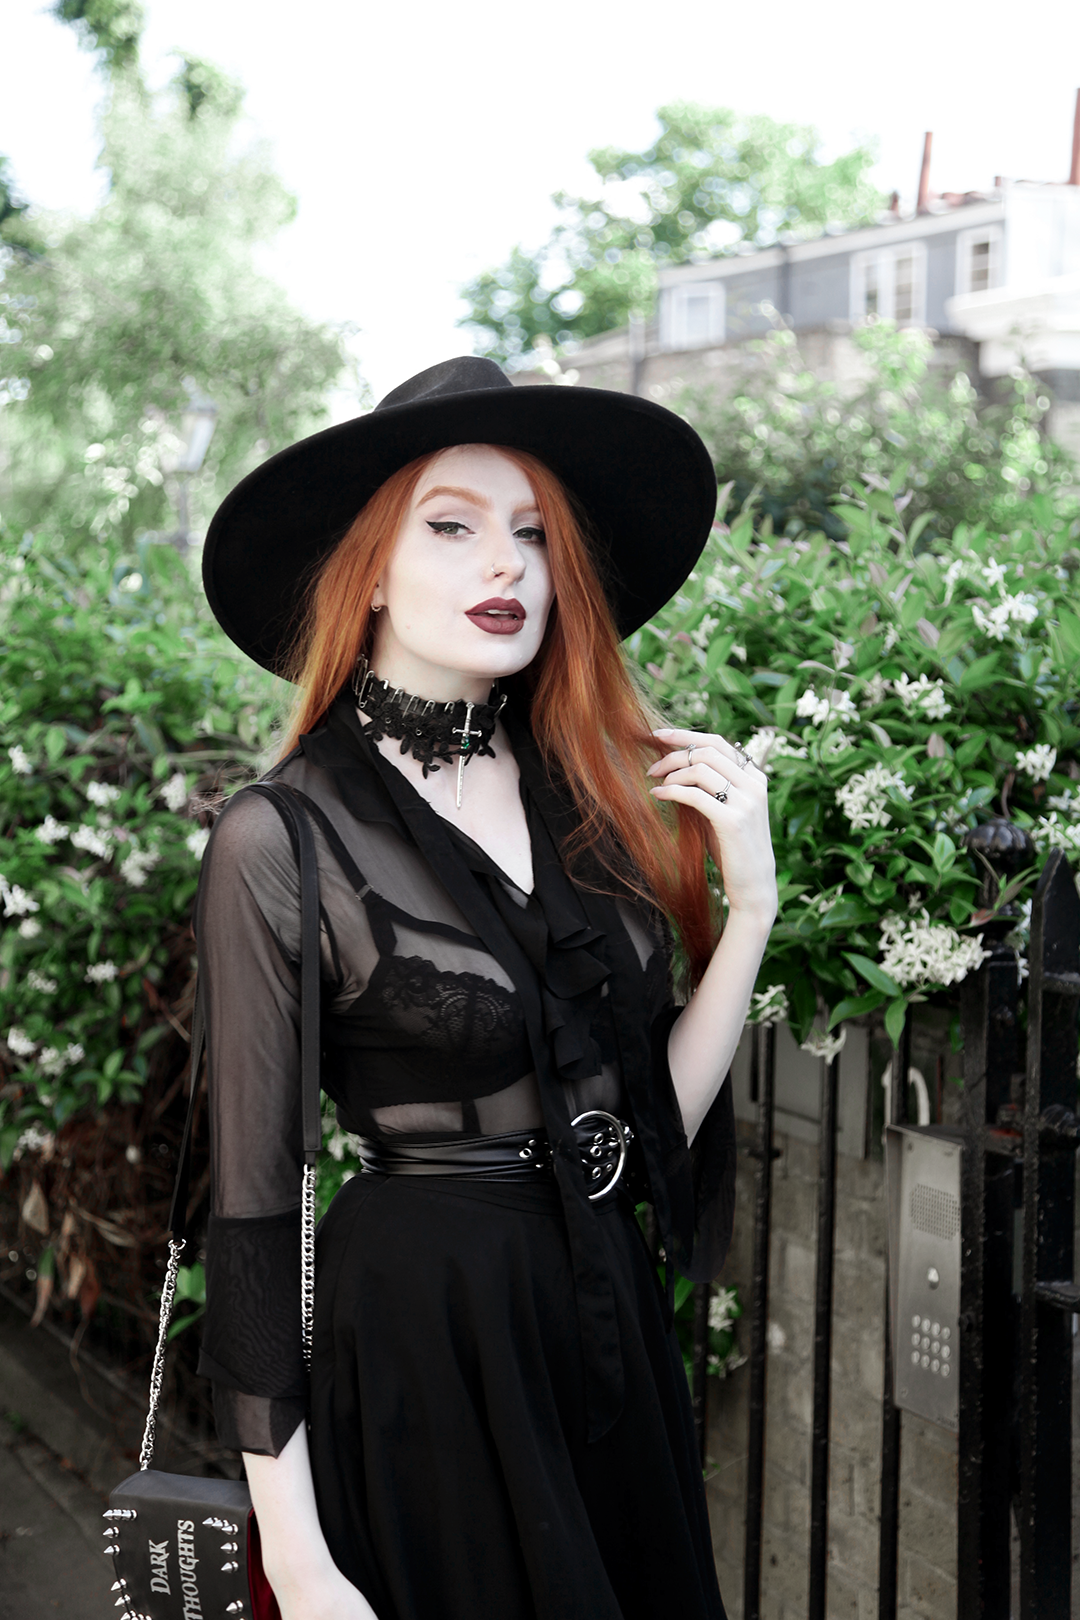 Olivia Emily wears Killstar Witch Brim Hat, Killstar Decay Nu-Mourning dress, Pheren Couture Sword Choker, Asos Eyelet Waist Belt and Skinnybags Dark Thoughts Book Clutch